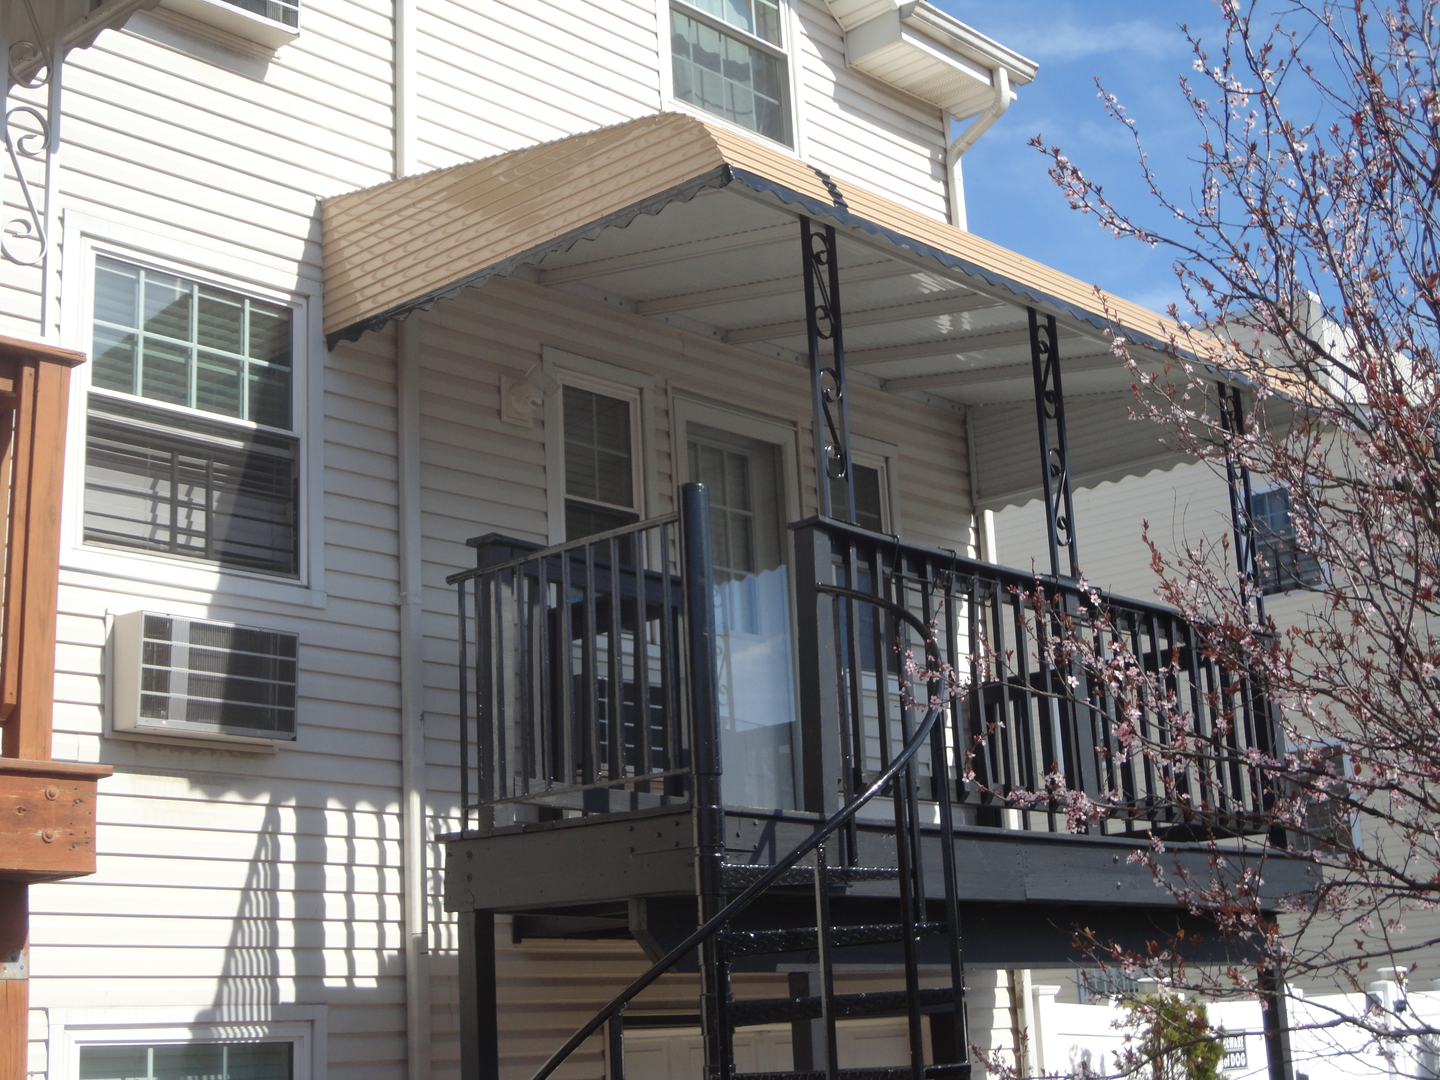 aluminum home awnings queens brooklynl i free estimate